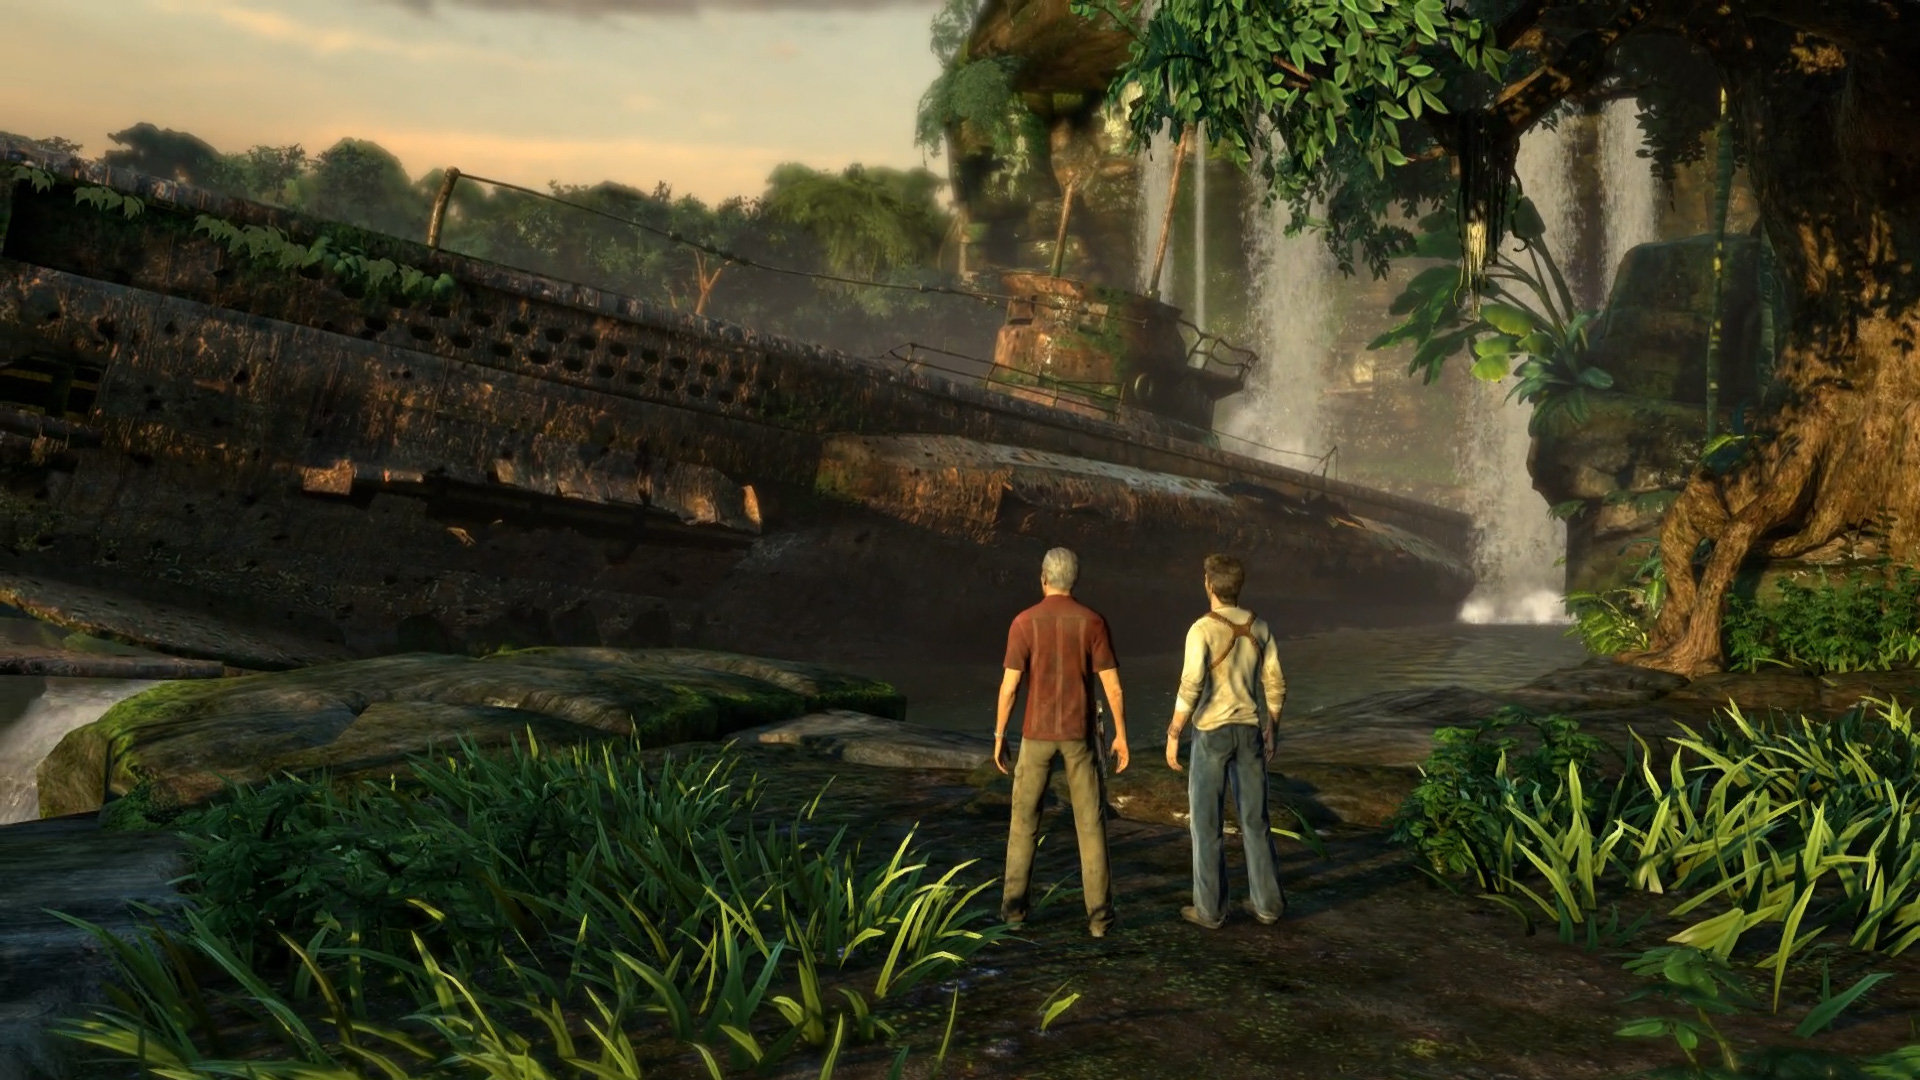 uncharted-drakes-fortune-remastered-screen-02-ps4-eu-28sep16.jpg